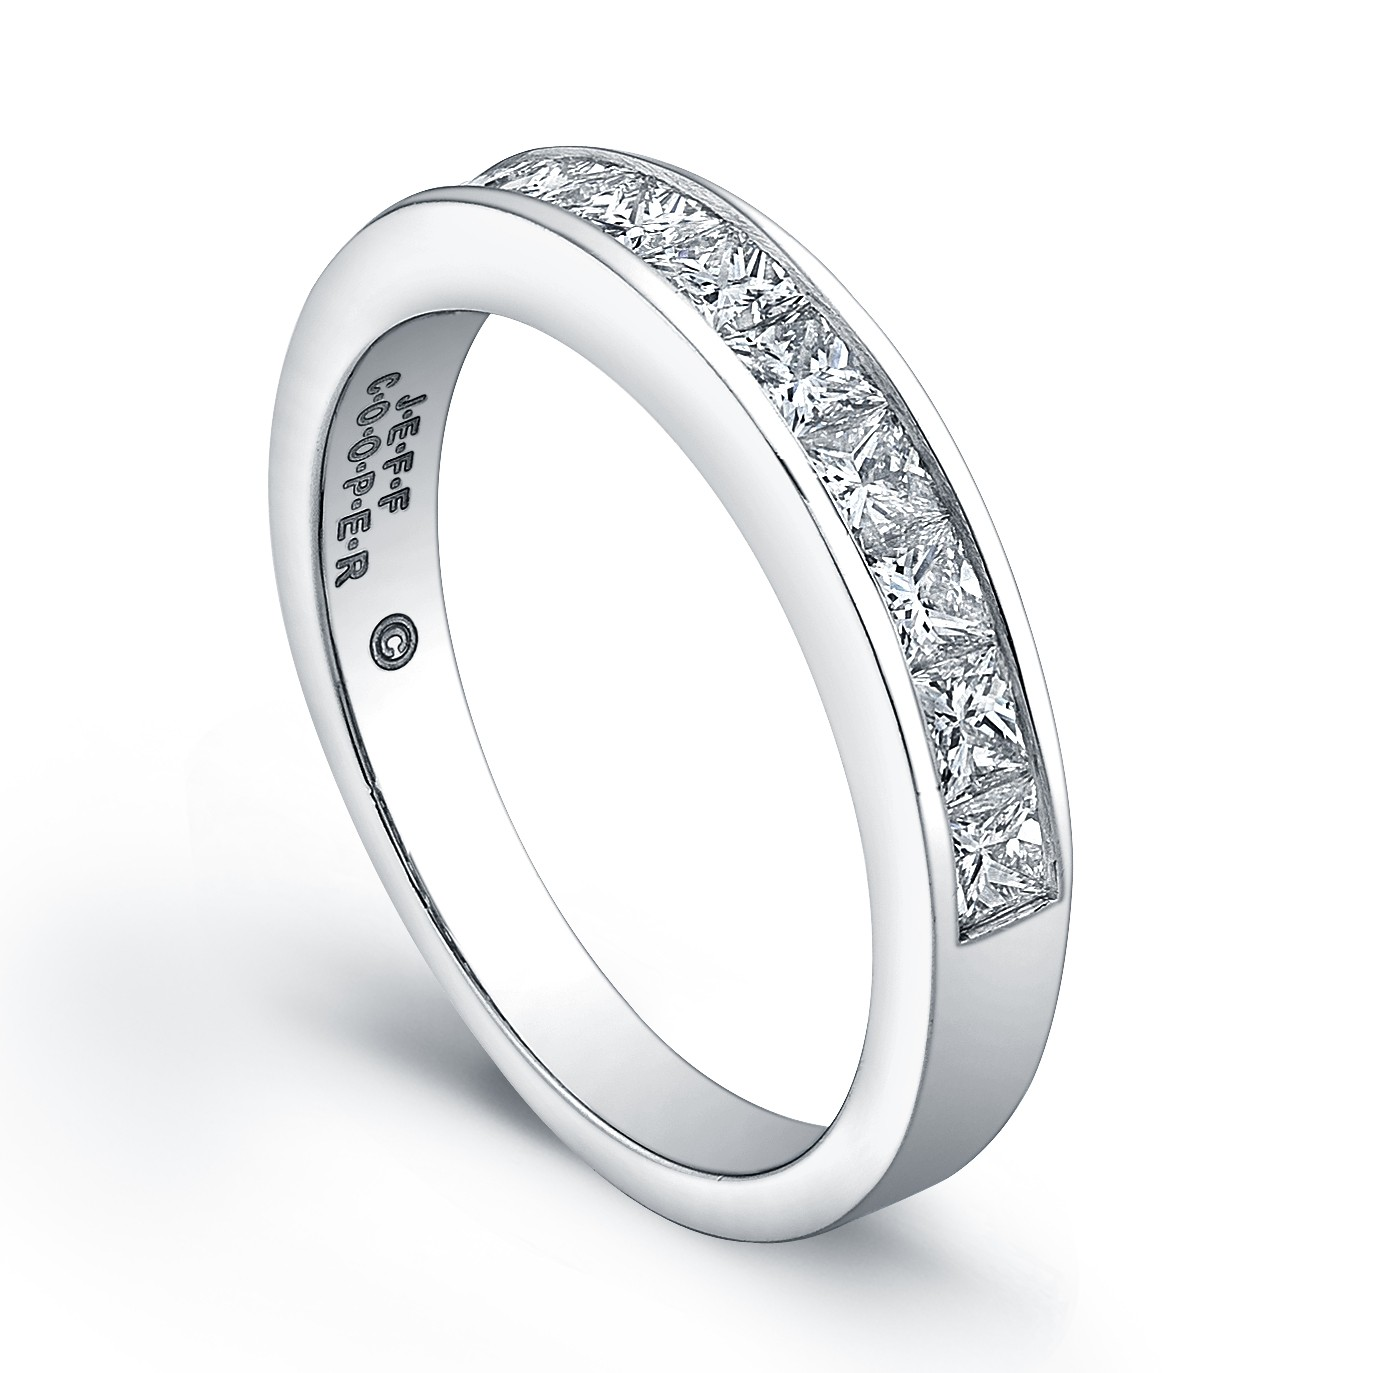 What you have to know about the thumb rings for women - Ring Review